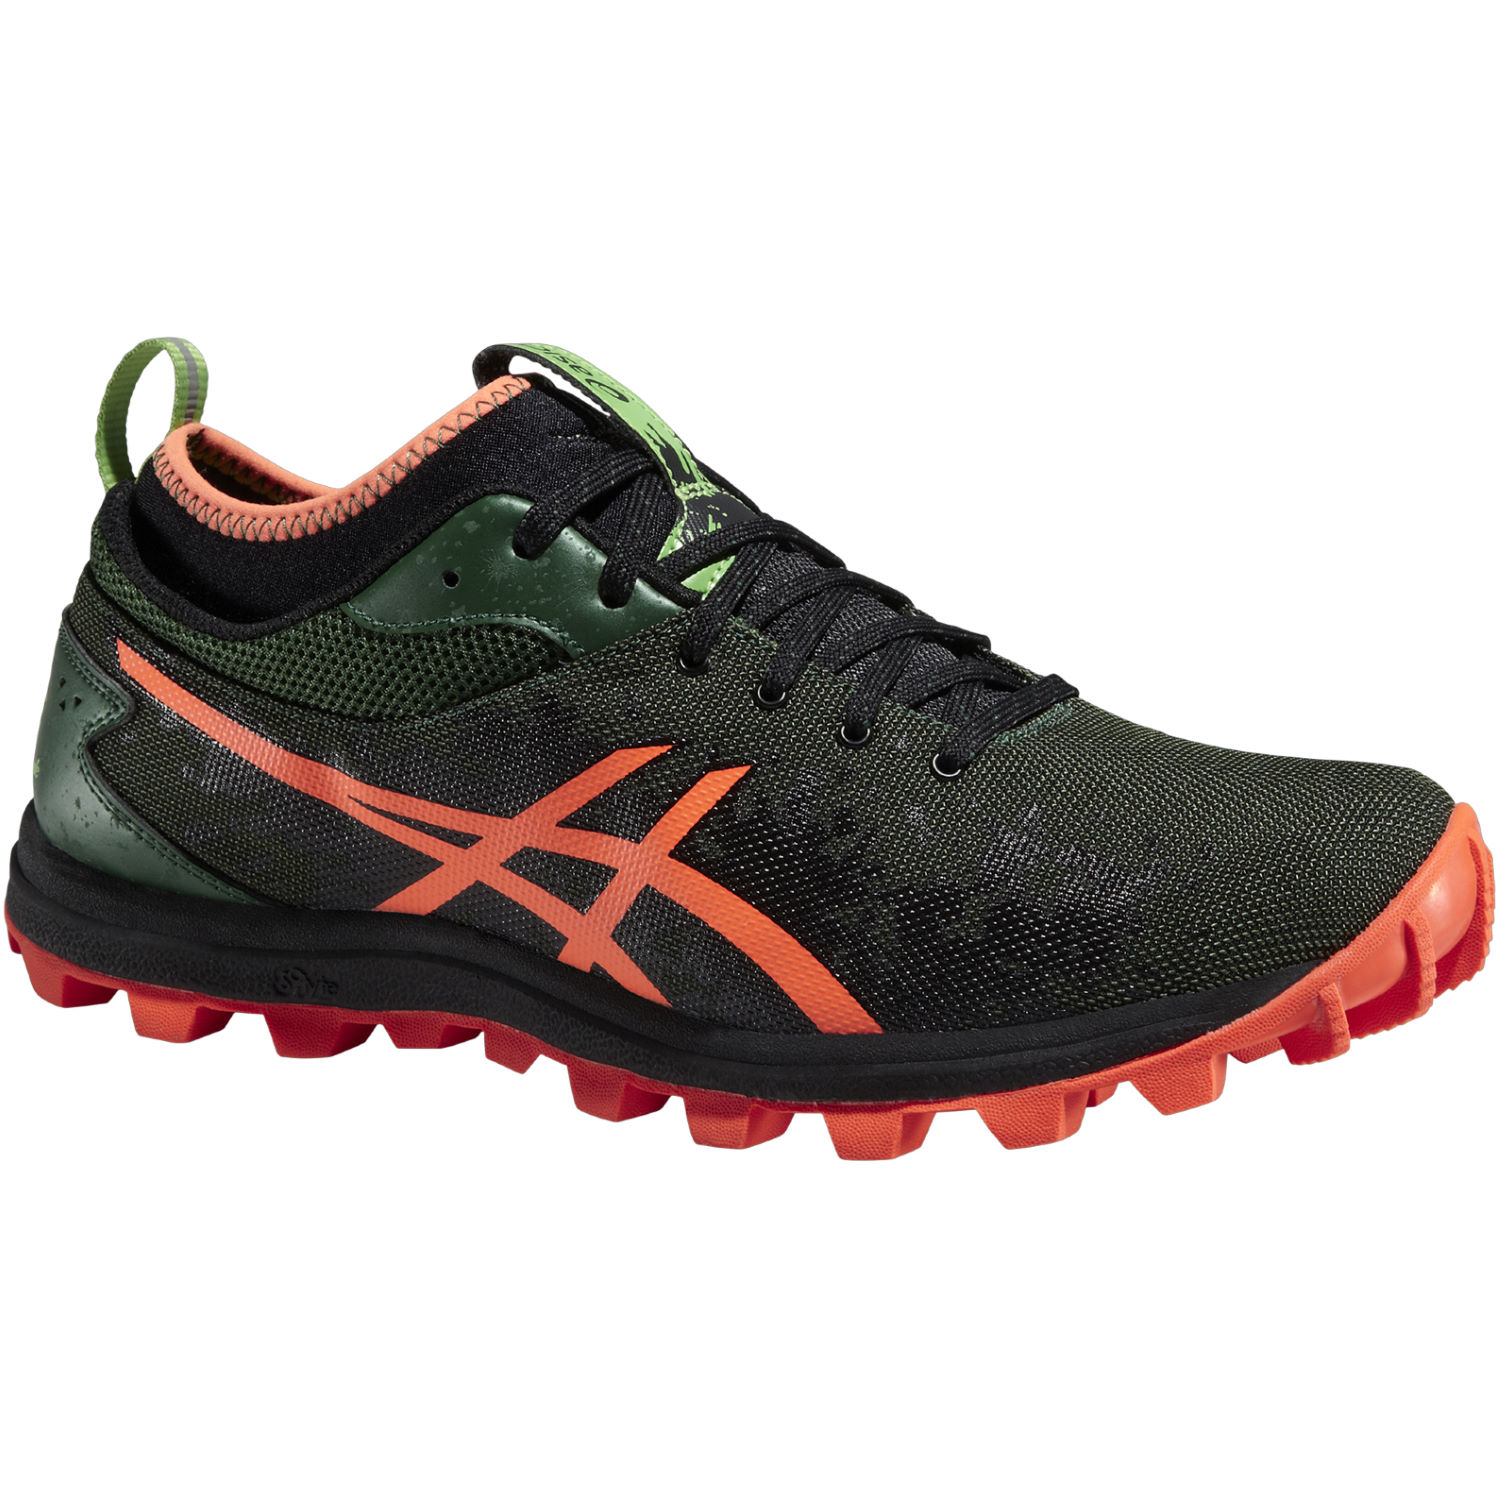 Top Rated Asics Womens Running Shoes